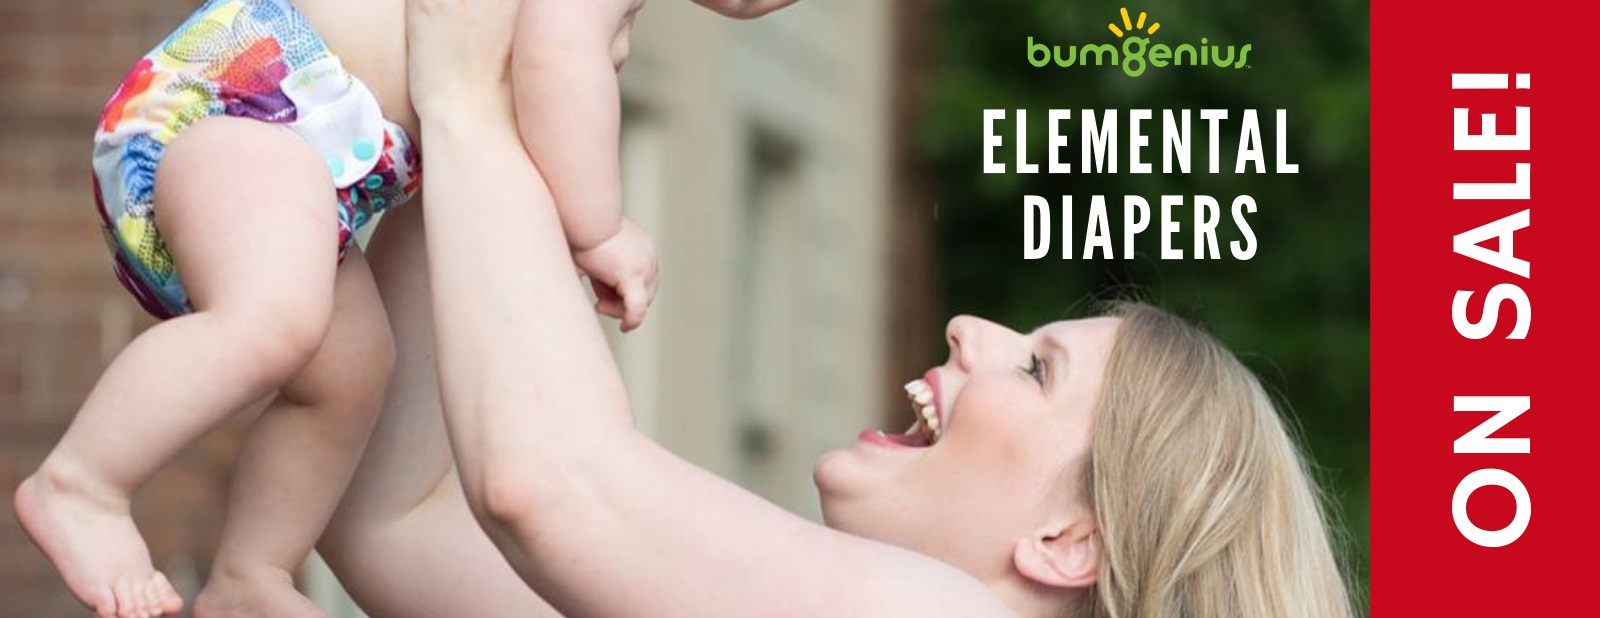 bumgenius elemental cloth diaper sale